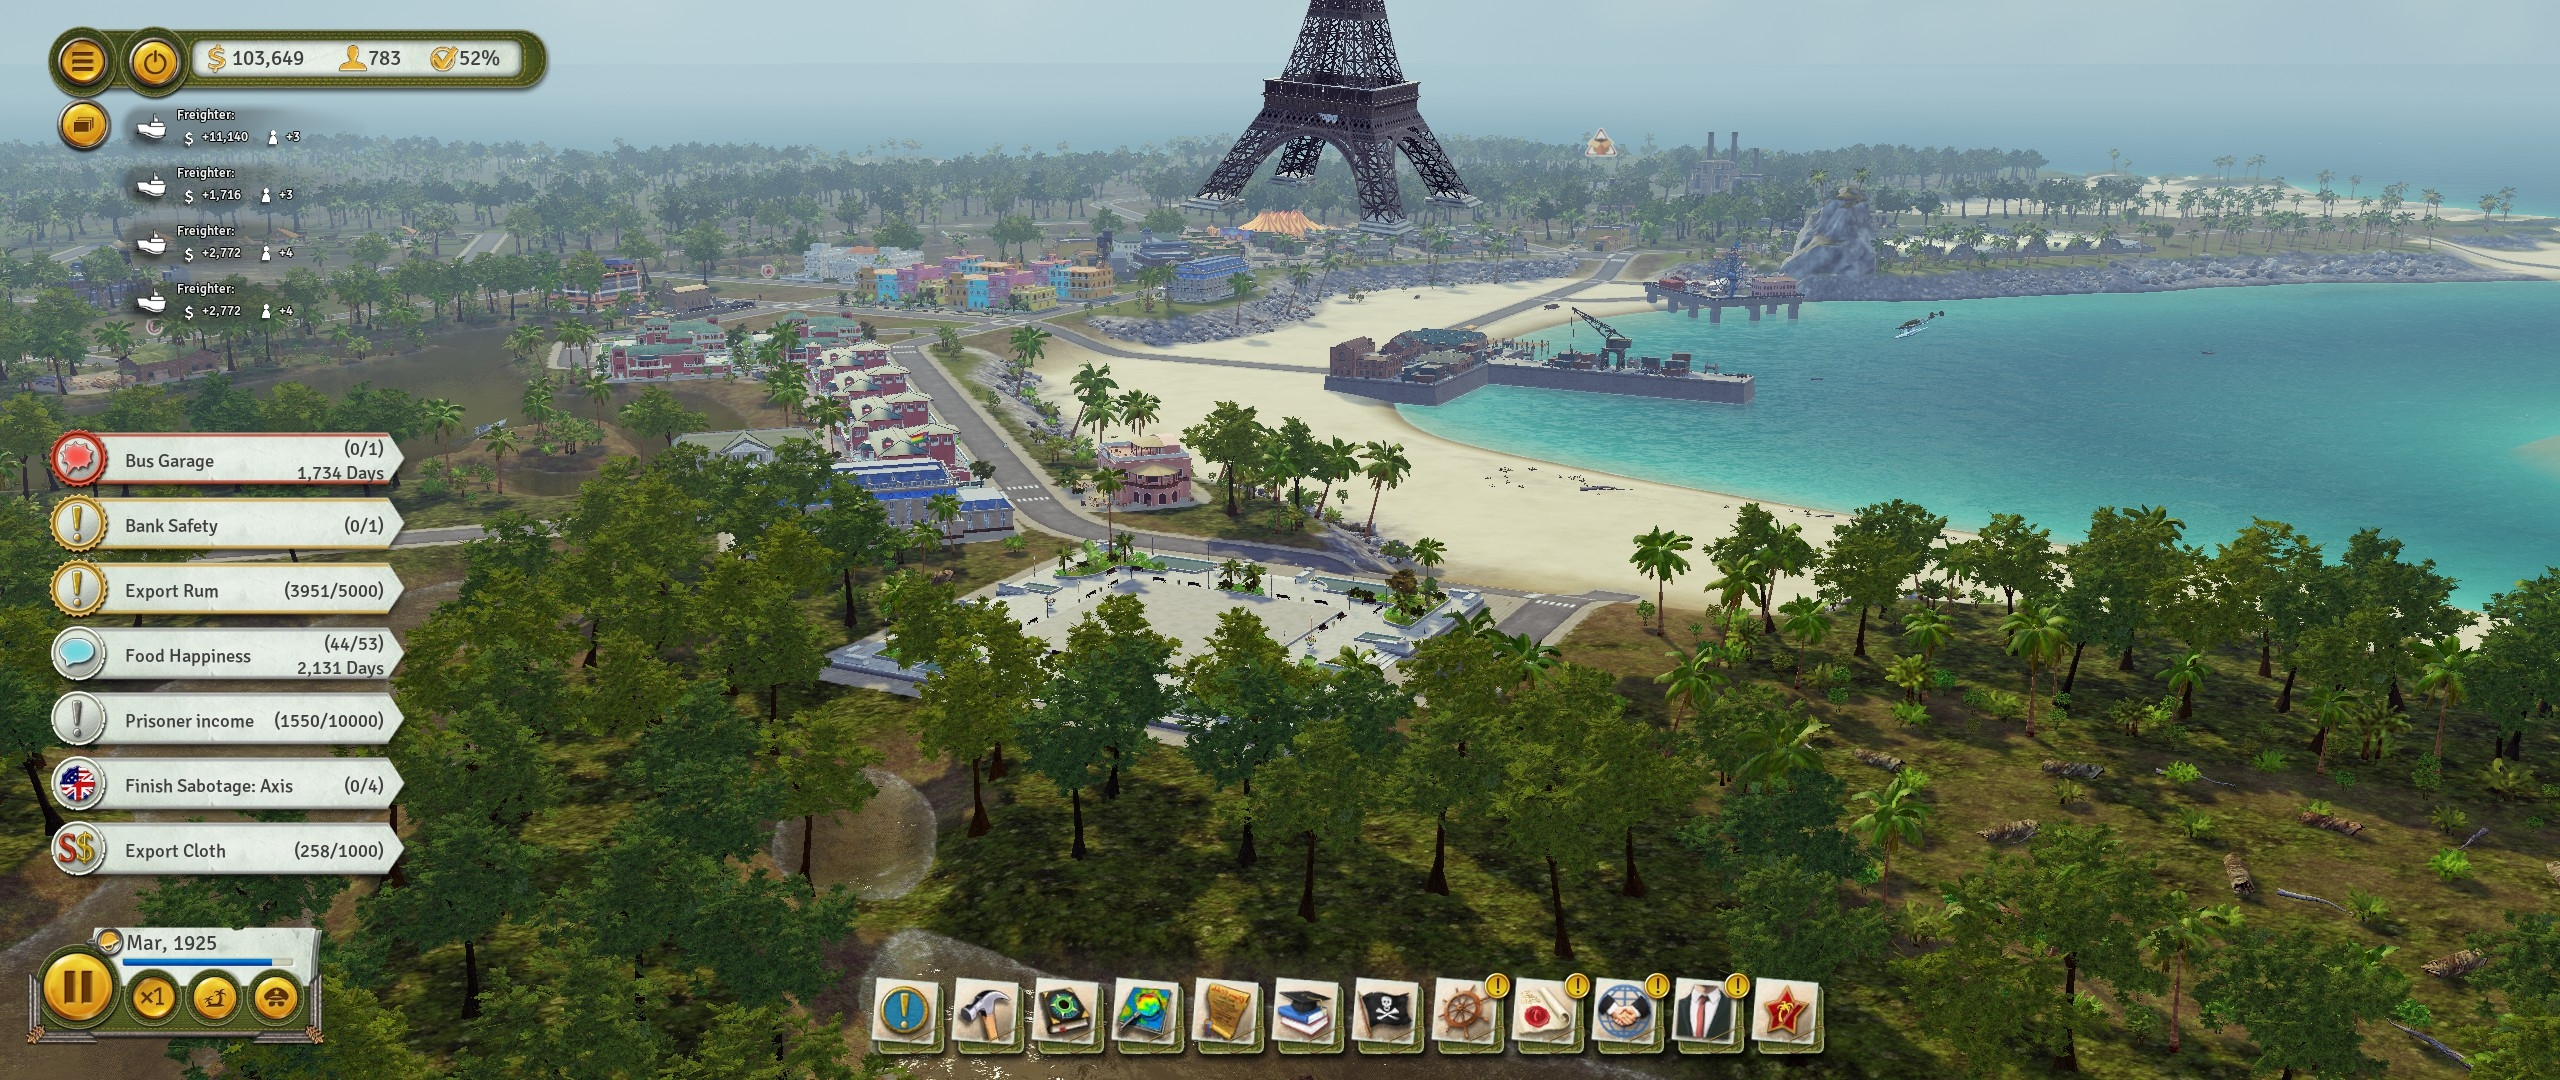 Tropico 6 Review - The Could-Be Revolution